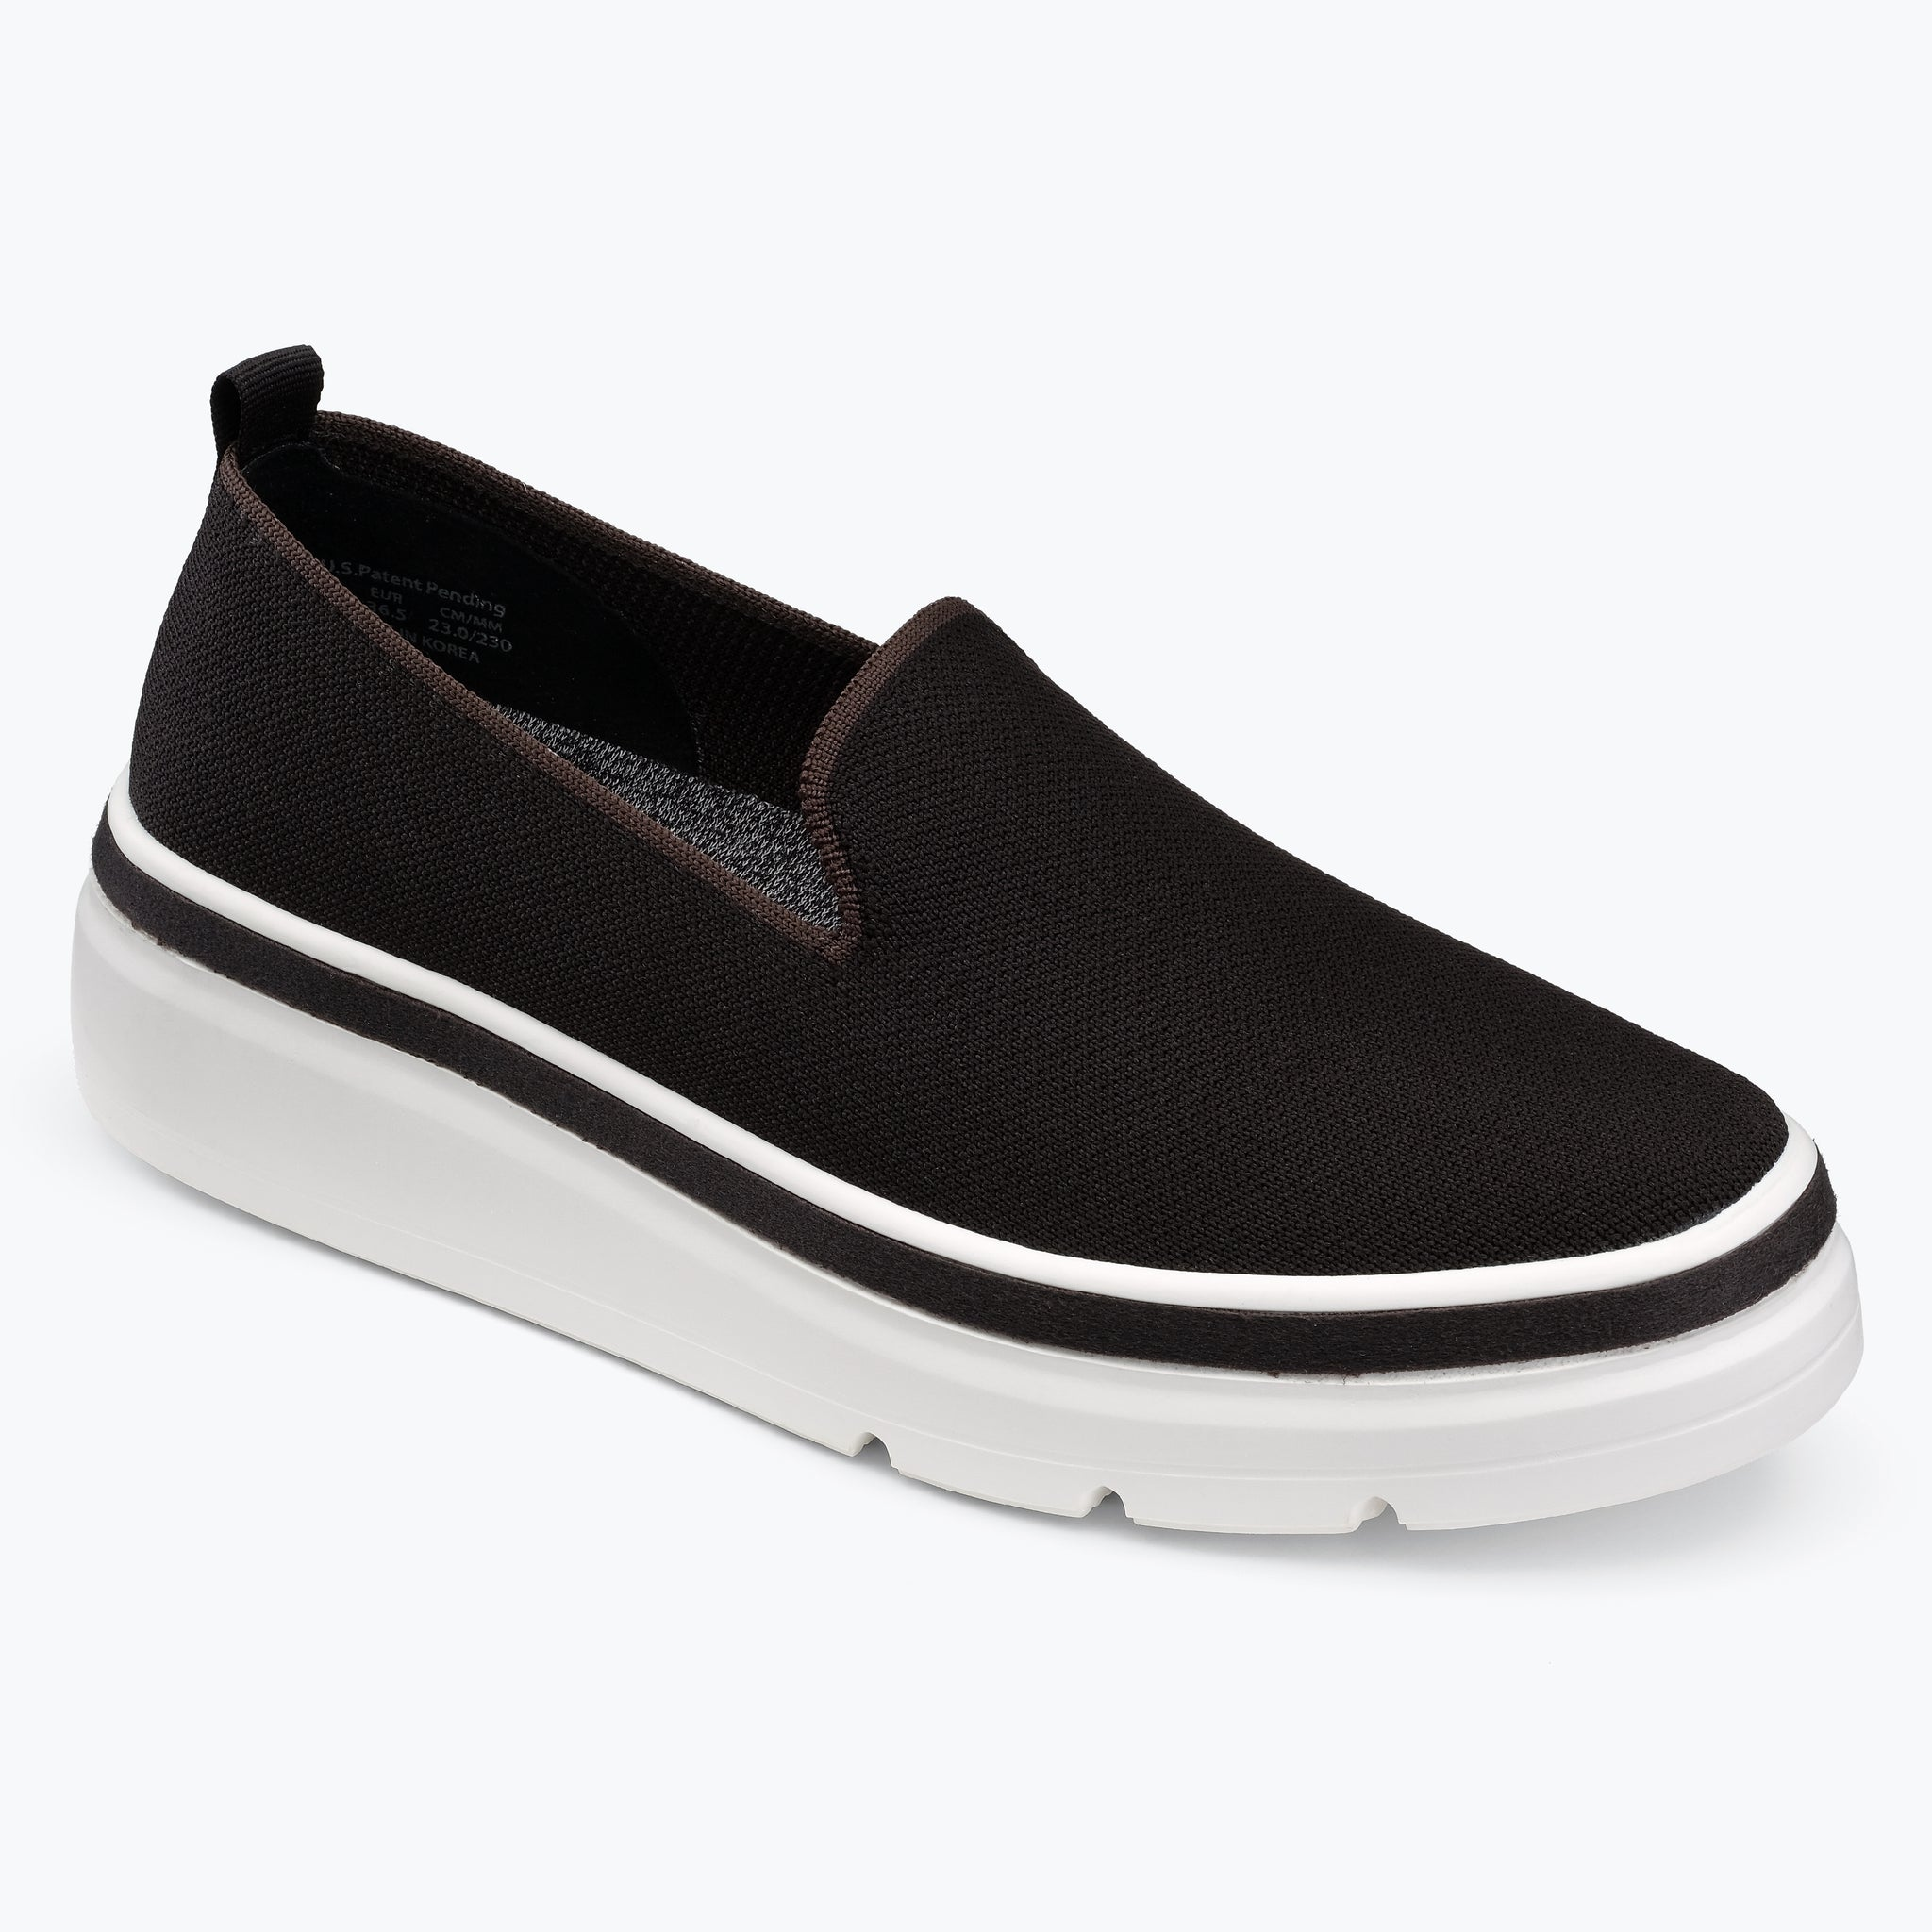 Sutton Knit Sneaker - Black